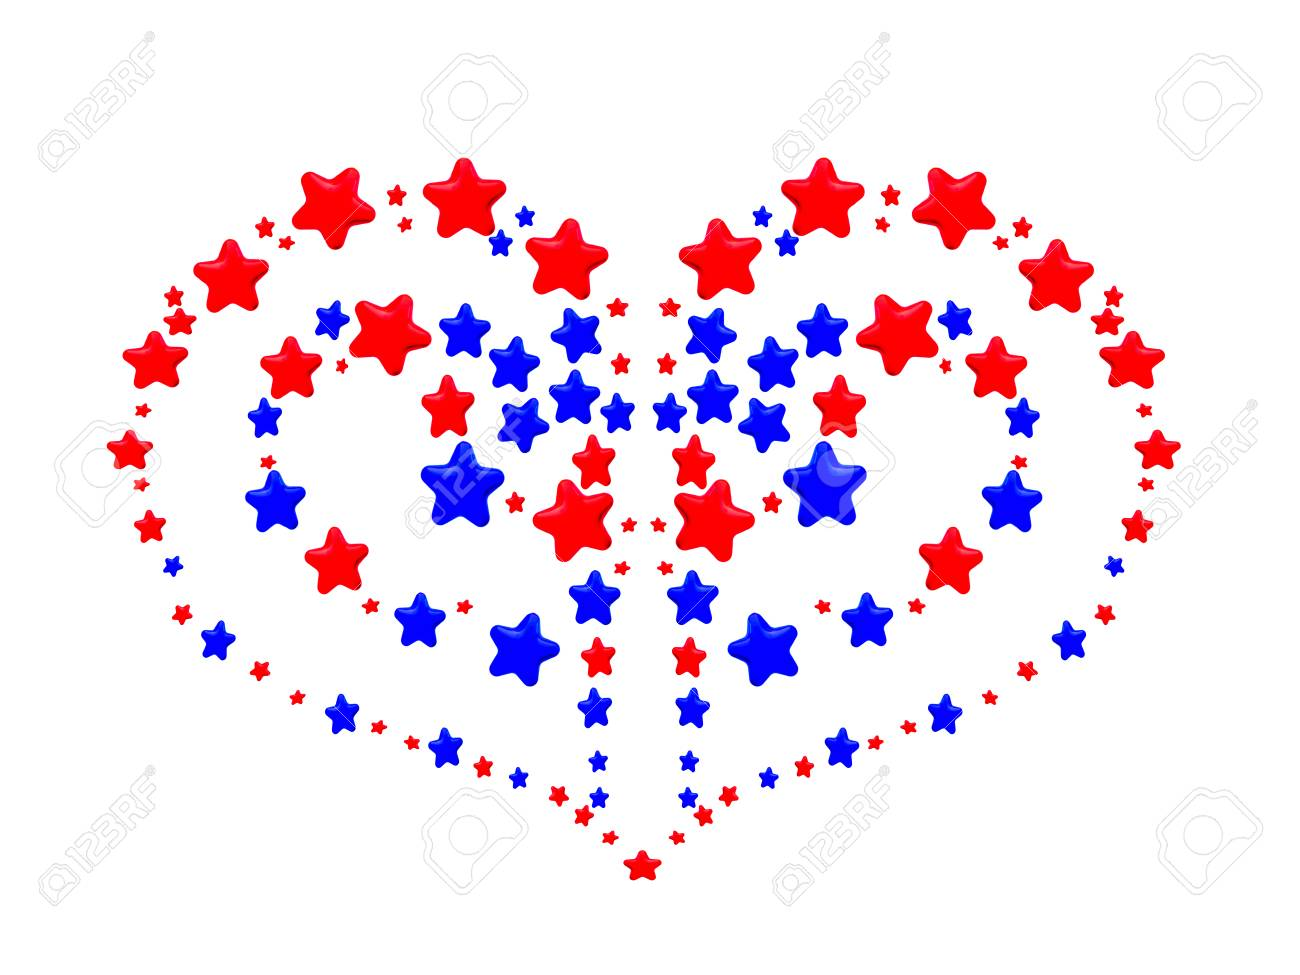 A Heart Pattern Created From Red And Blue Stars On White Background